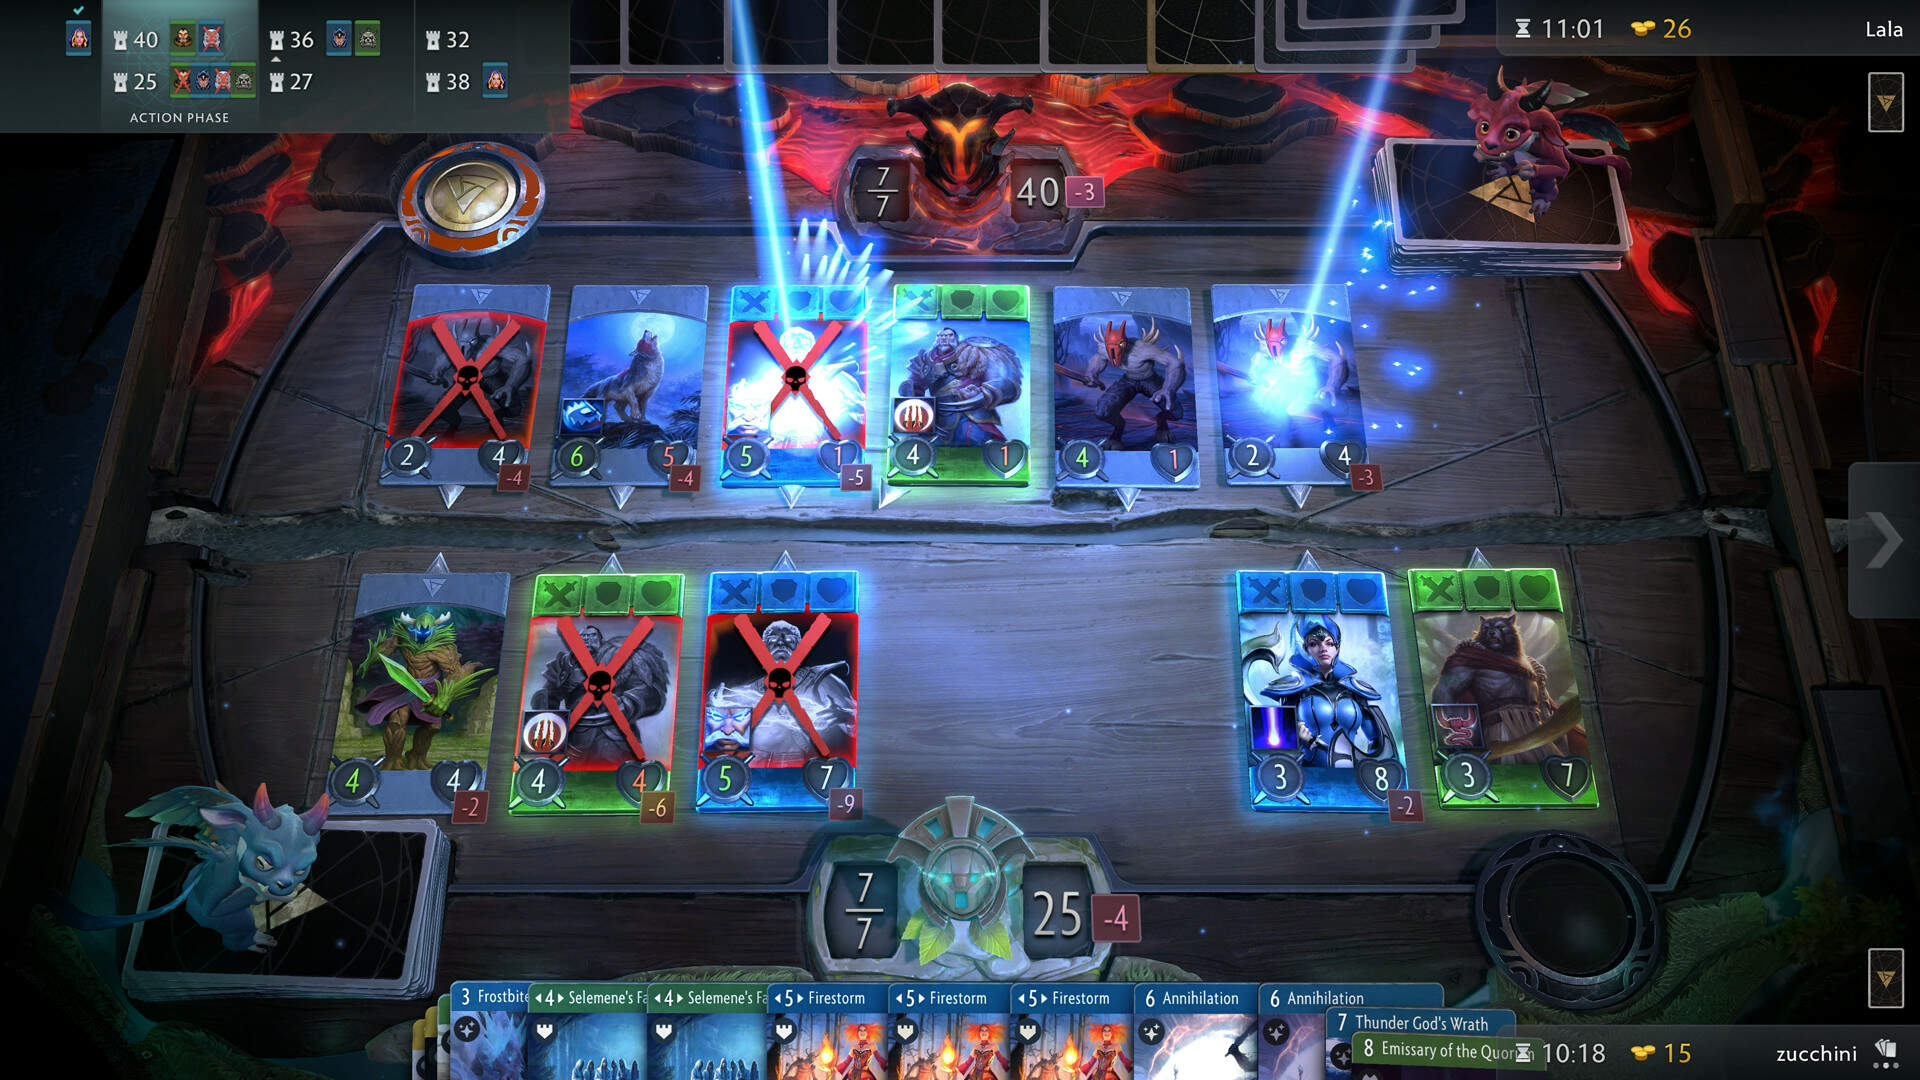 """Artifact's Reboot Is Large in Order to """"Justify Its Existence,"""" Gabe Newell Says"""